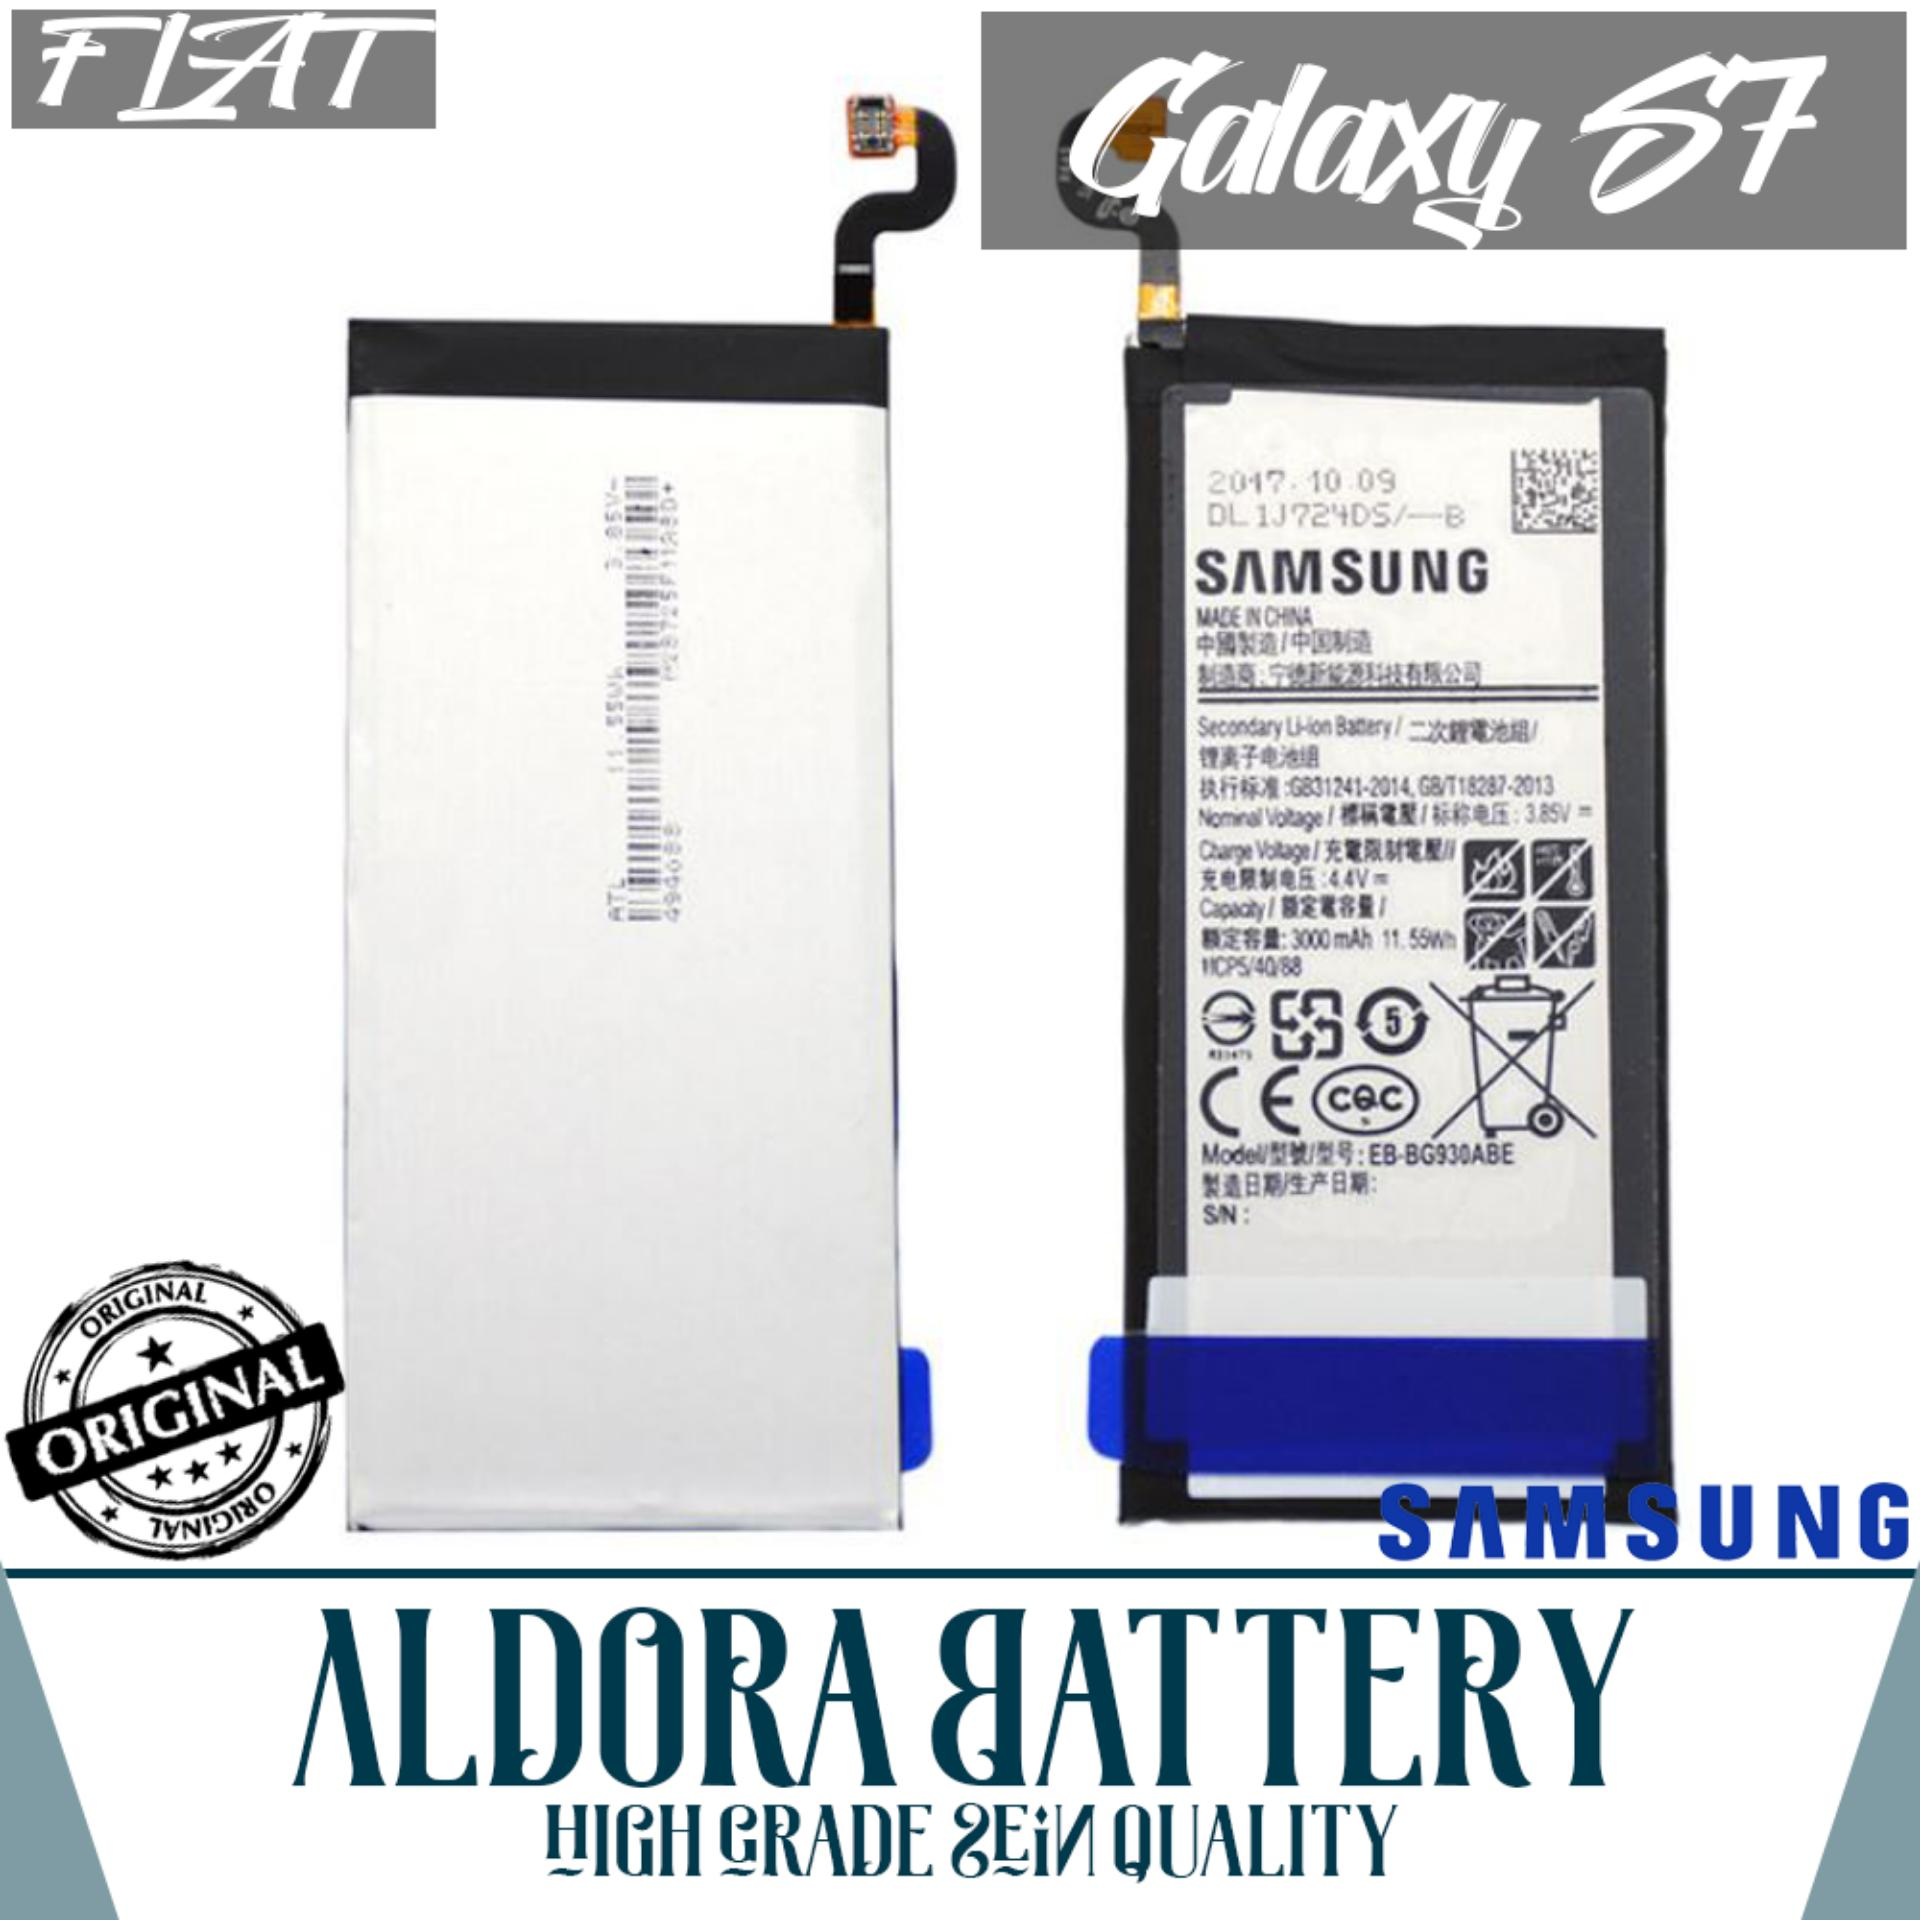 Samsung Galaxy S7 Edge Black Pearl 128gb Garansi Resmi Sein Gratis Flat Aldora Baterai For High Grade Battery Quality